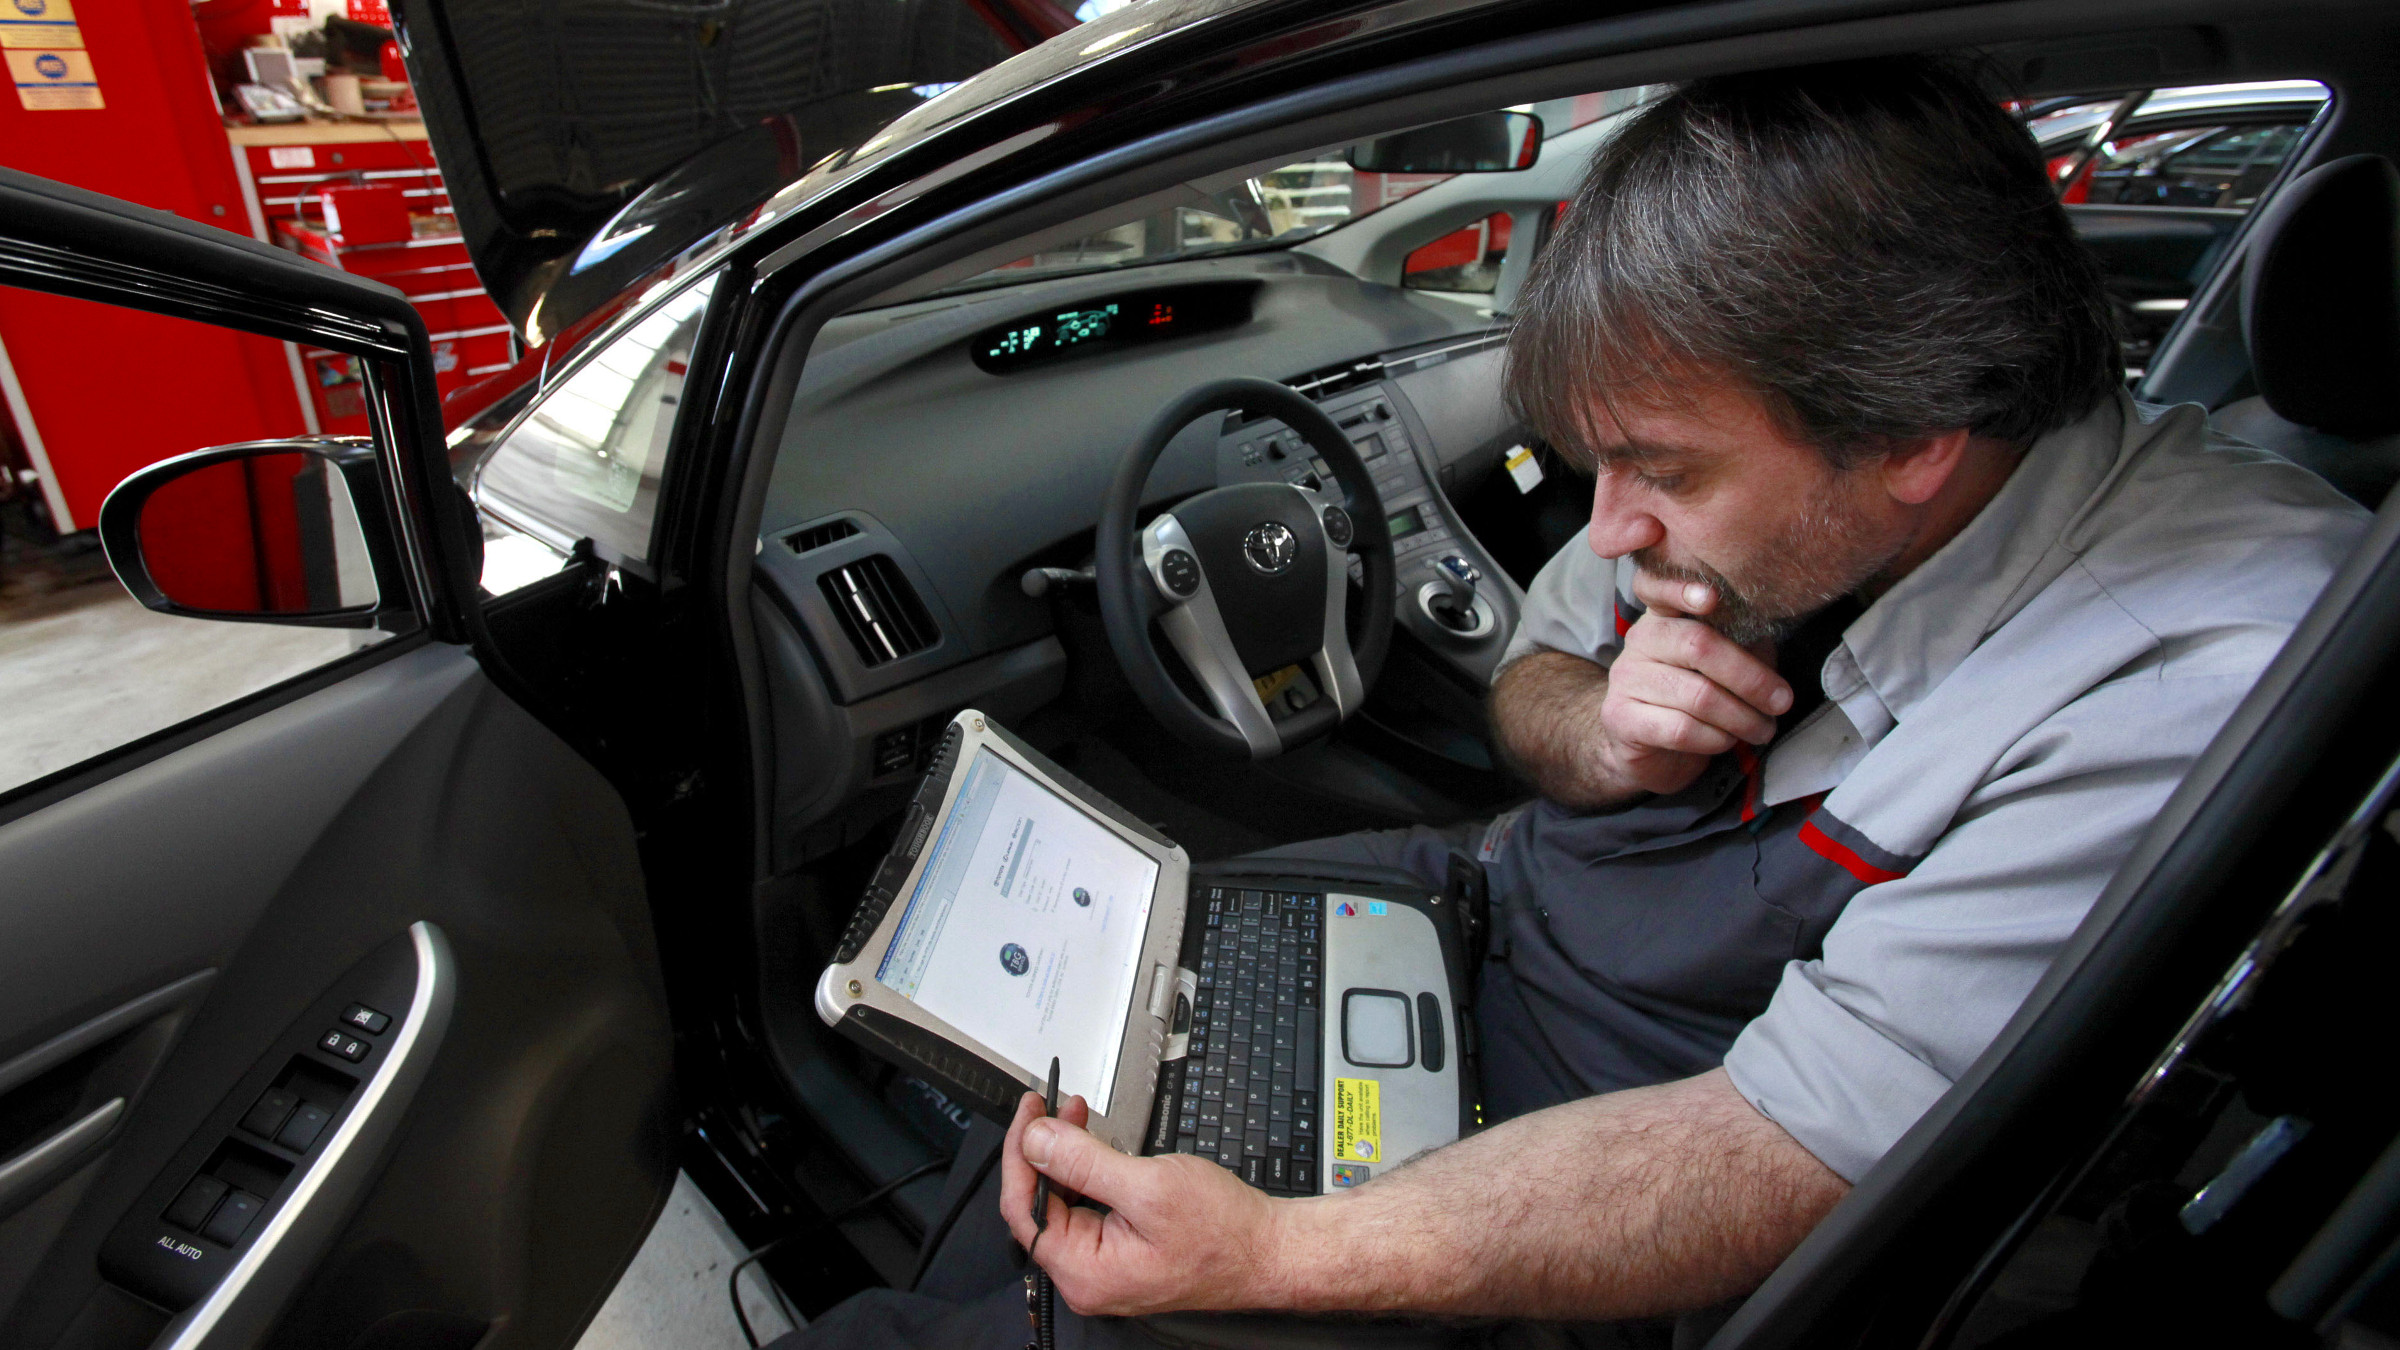 FILE - In this Feb. 9, 2010 file photo, master diagnostic technician Kurt Juergens, of Foxborough, Mass., uses a laptop computer to diagnose and repair the brake system on a 2010 Toyota Prius in the repair shop of a Toyota dealership, in Norwood, Mass. A pair of hackers maneuvered their way into the computer systems of a 2010 Toyota Prius and 2010 Ford Escape through a port used by mechanics. The hackers showed that they could slam on the brakes at freeway speeds, jerk the steering wheel or even shut down the engine, all from their laptop computers. The work demonstrates vulnerabilities with the growing number of car computers, about 20 on older models and up to 70 on sophisticated luxury cars.